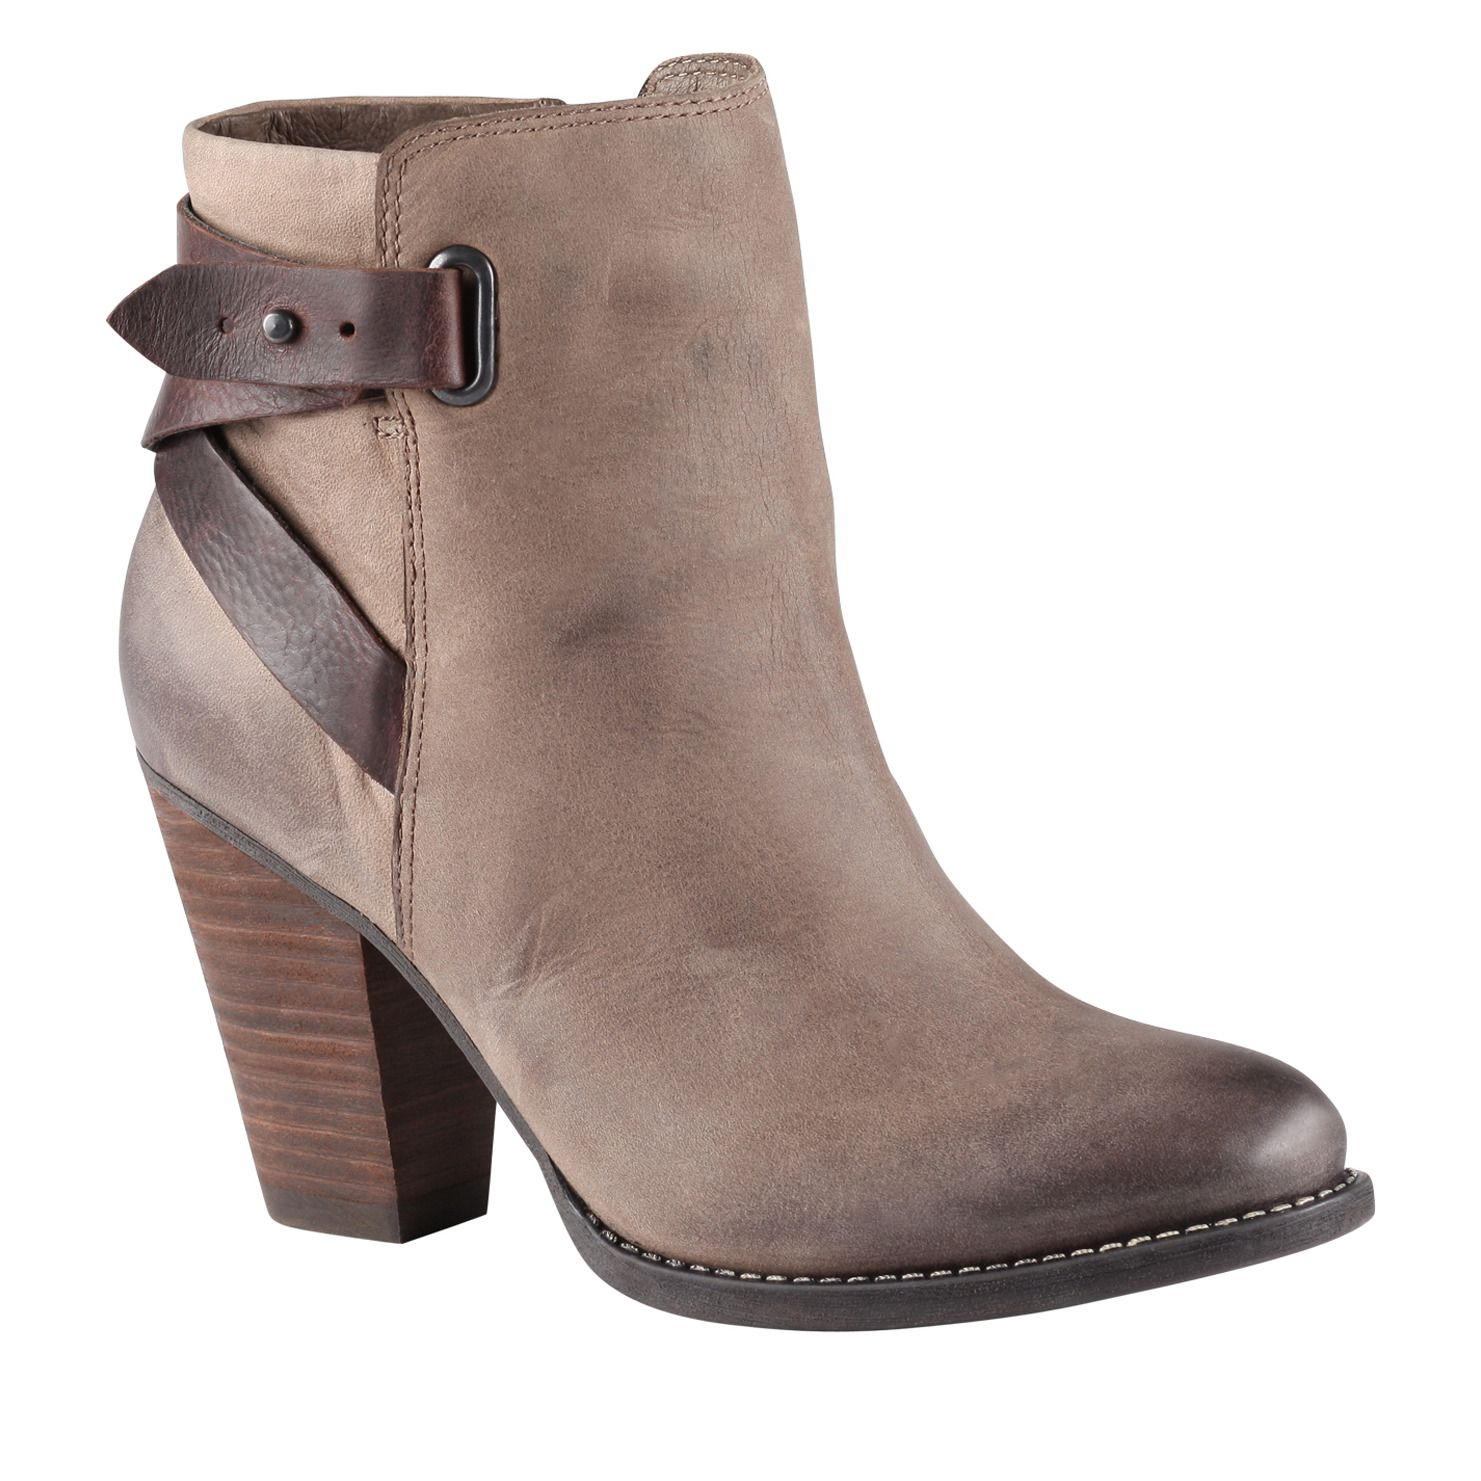 SALAZIE - women's ankle boots boots for sale at ALDO Shoes. A ...